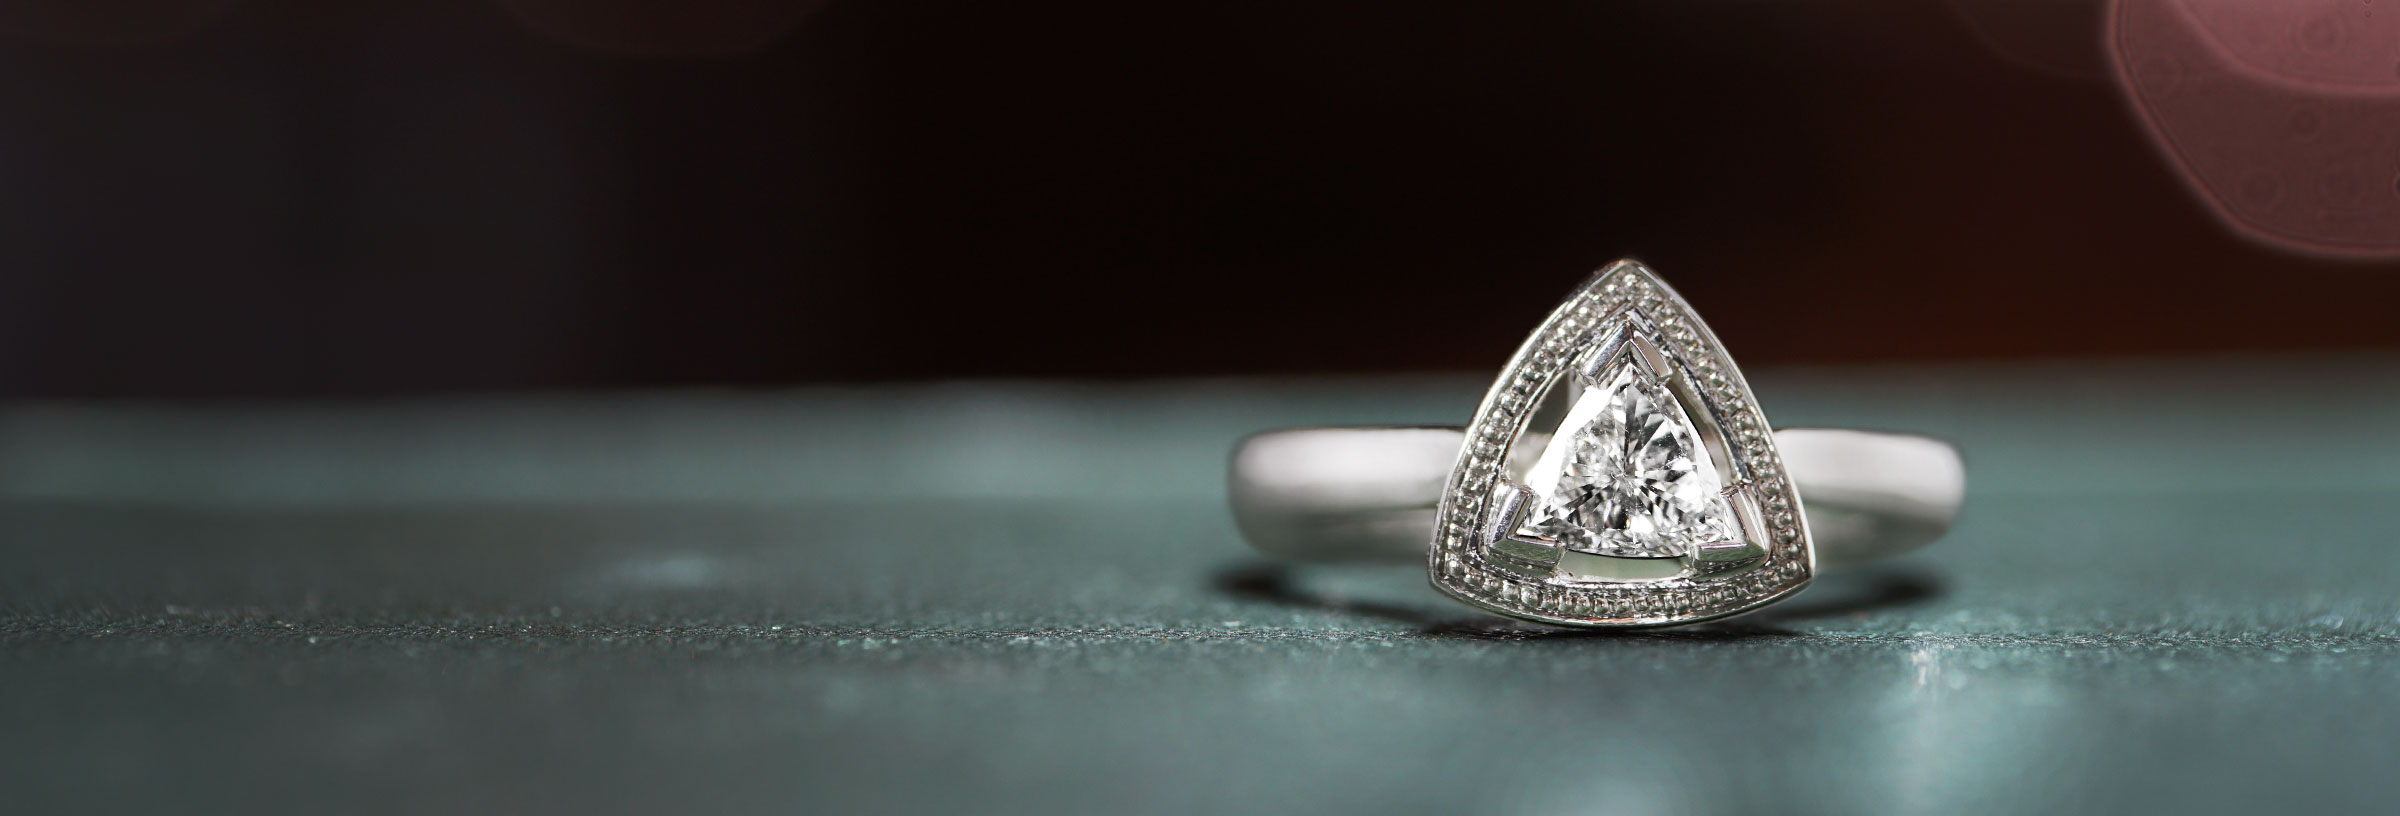 platinum-trilliant-cut-engagement-ring-with-beading-detail